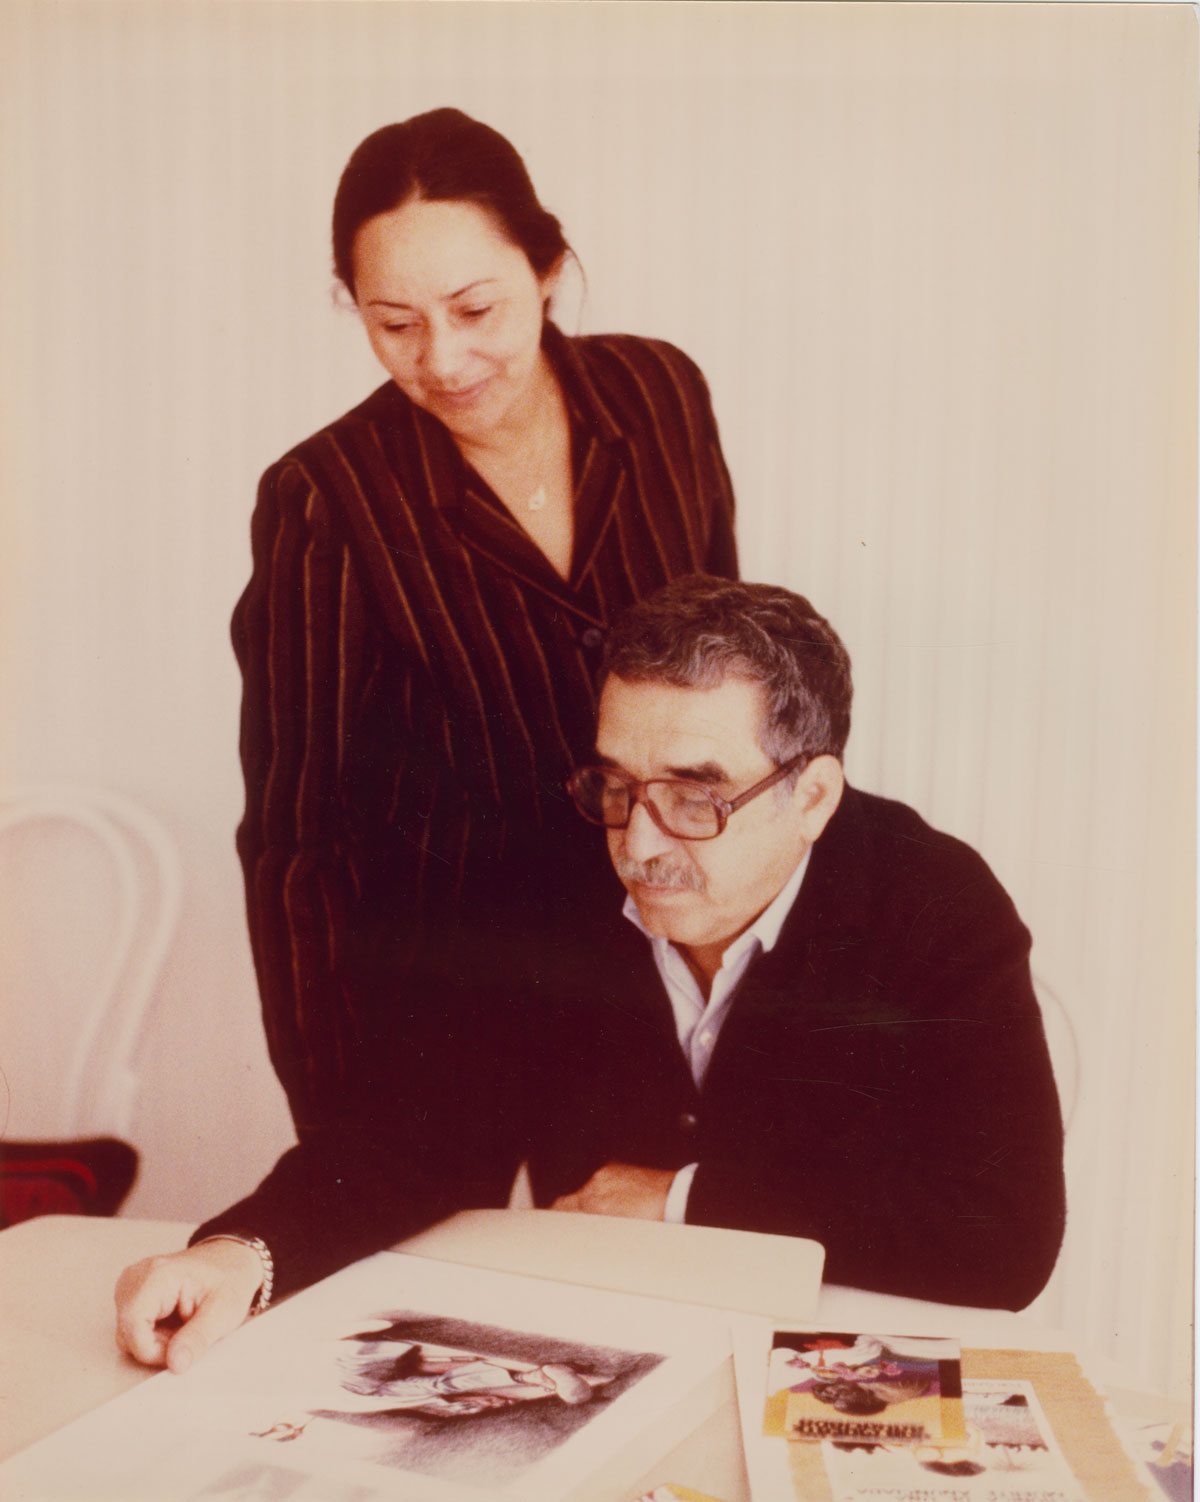 The author and his wife selecting the artwork for the cover of Crónica de una muerte anunciada; photographer and date unknown.